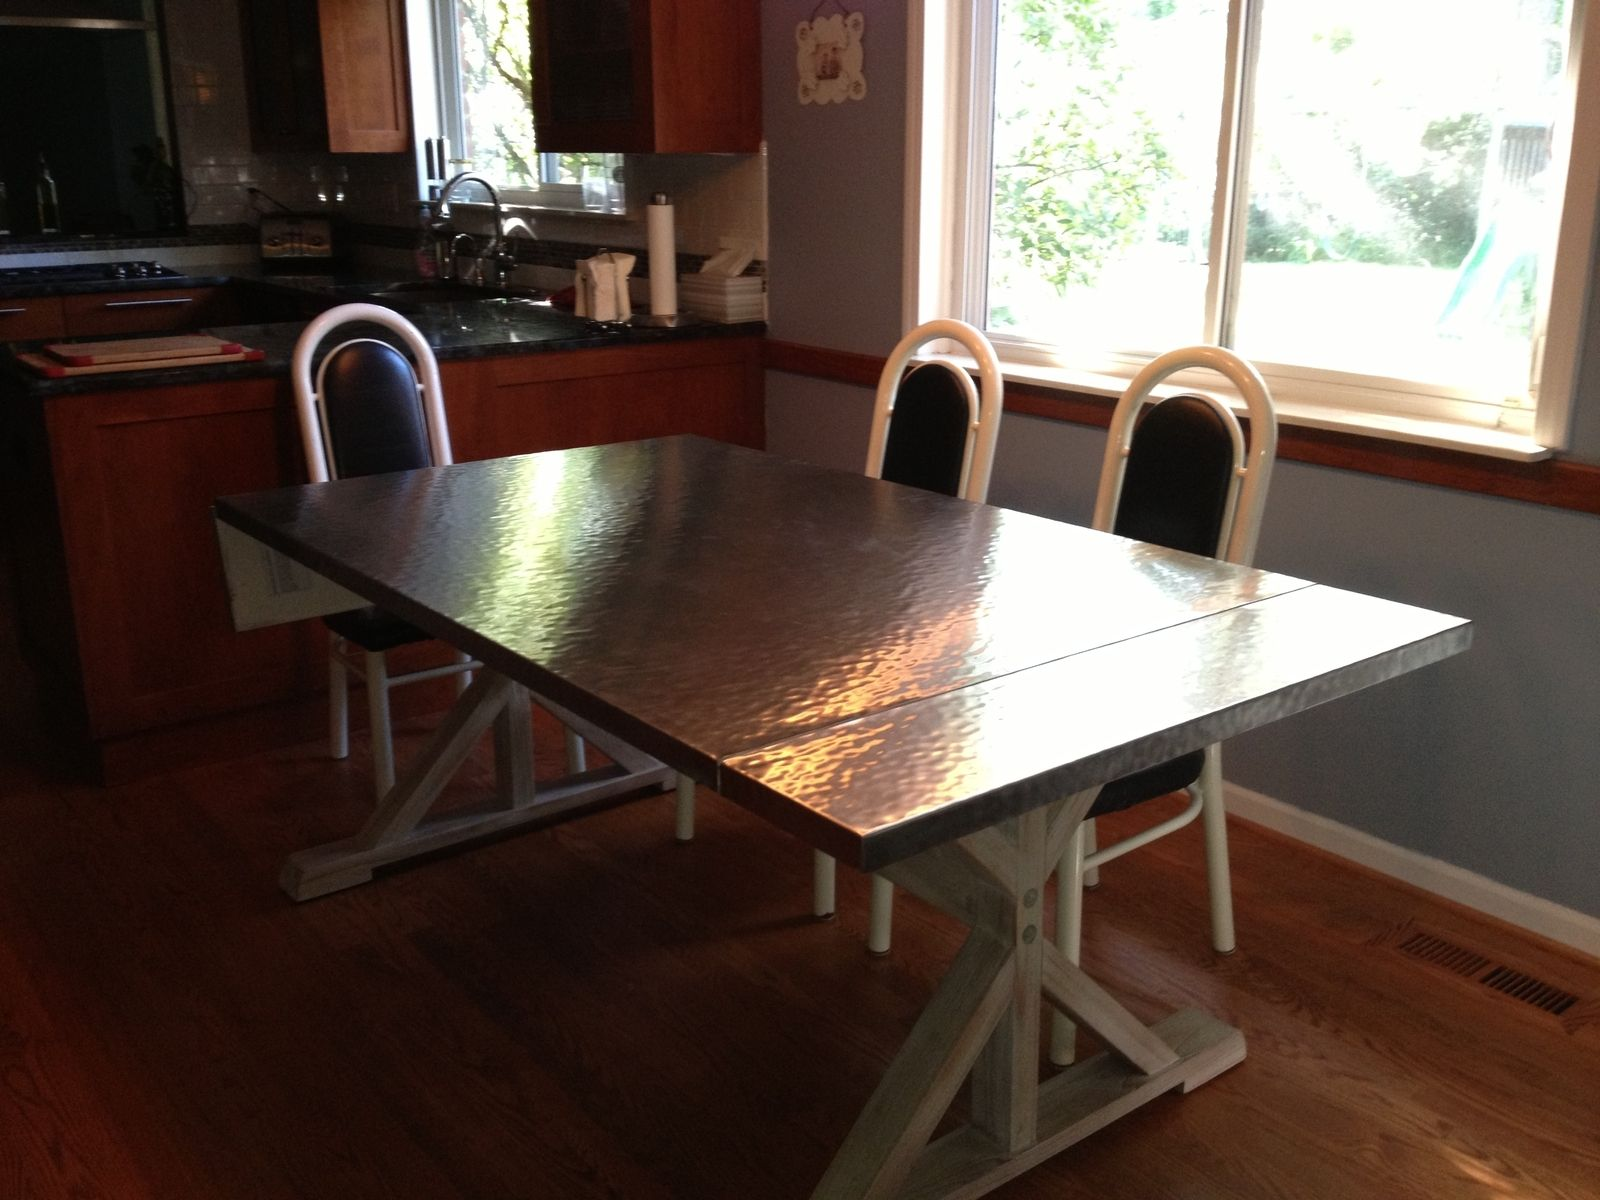 Handmade Custom Hammered Stainless Steel Dining Table By BK - Custom tulip table